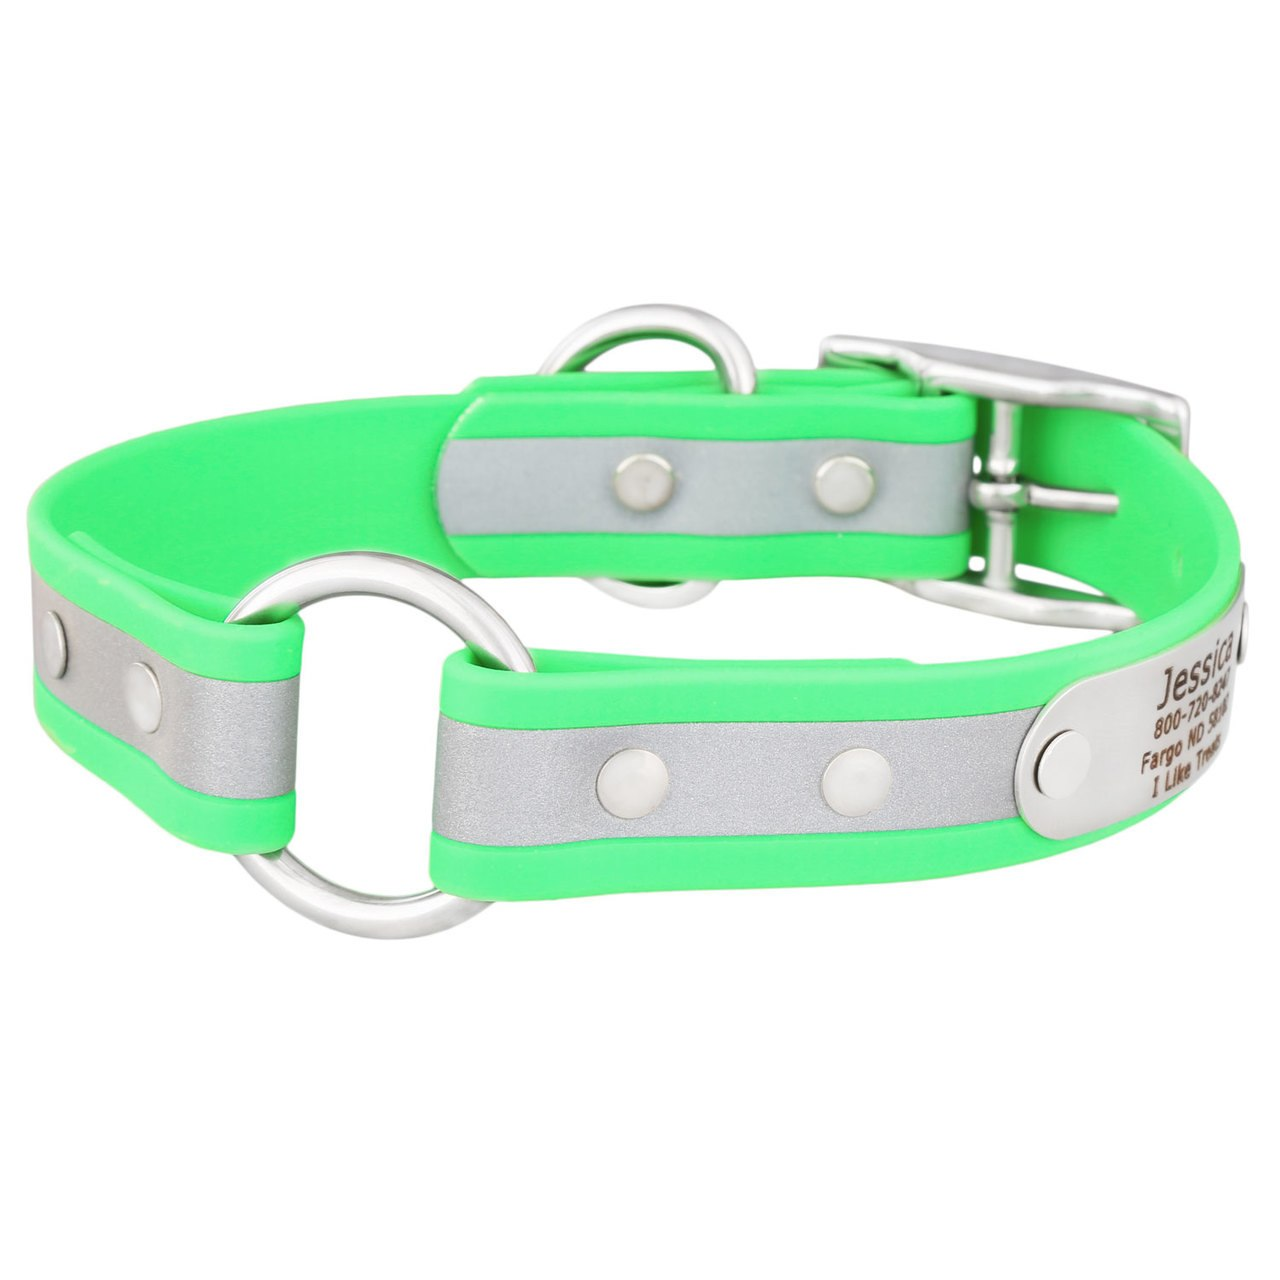 Personalized Waterproof Reflective Safety Dog Collar Green